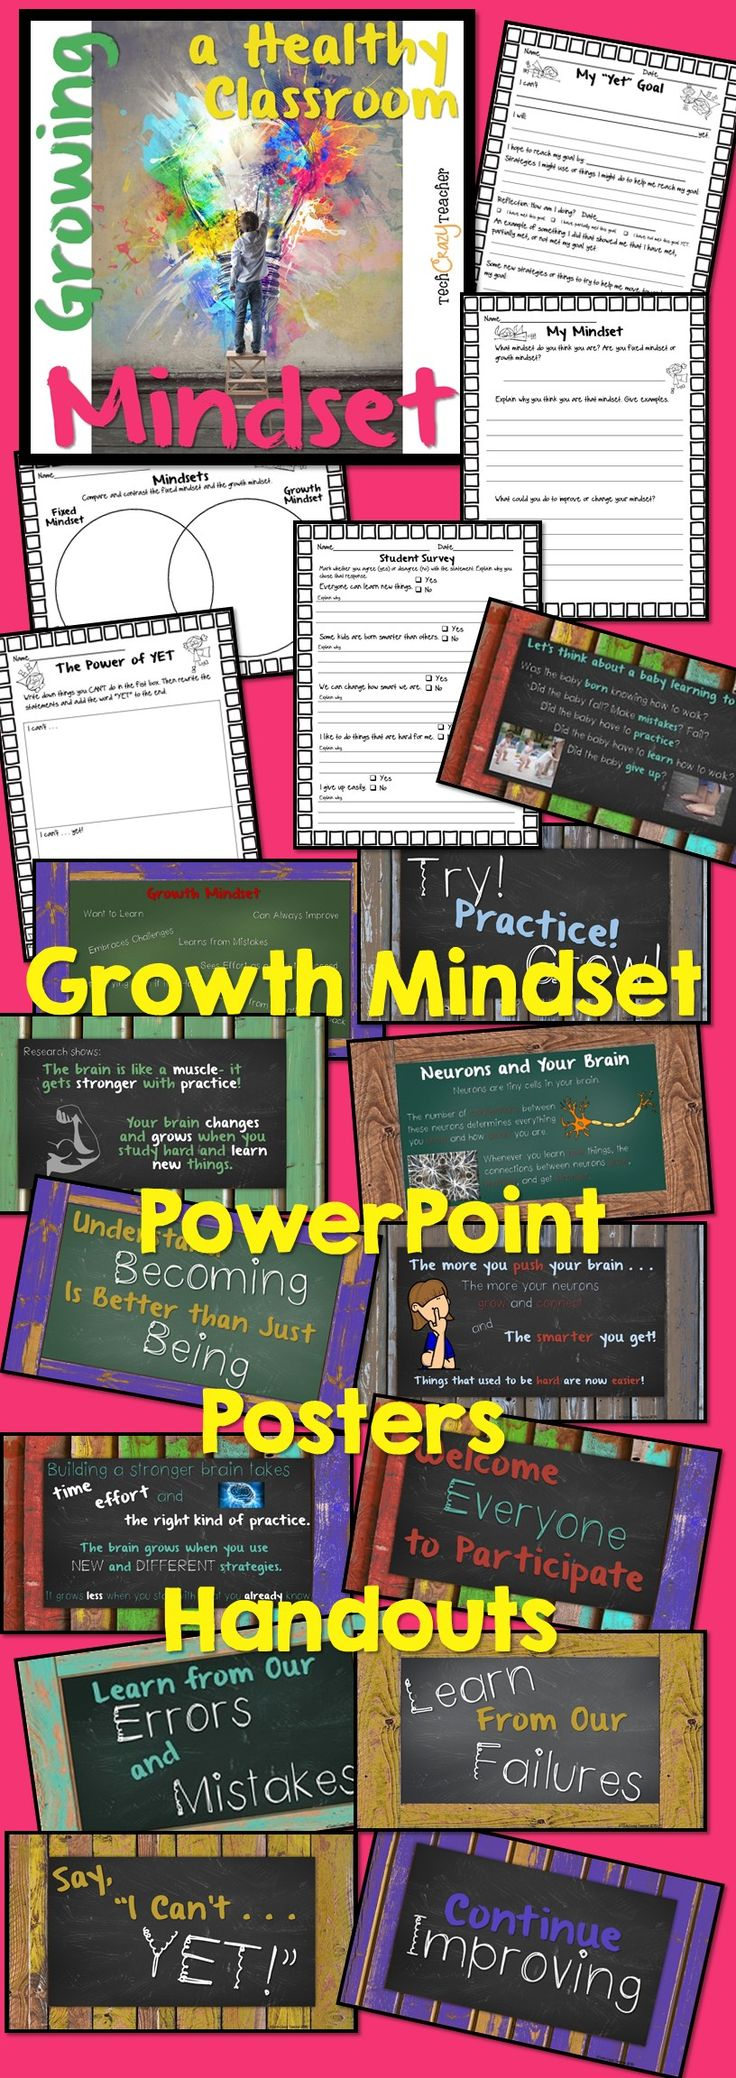 Growing a Healthy Classroom Mindset is designed to cover at least 20 days of instruction. Teachers introduce the basic knowledge concerning mindsets and brain research. They then present a growth mindset statement each day. Discuss the statement and what it means. As each statement is covered, add the accompanying poster to a bulletin board to create an inspiring display that can be referred to throughout the year. $